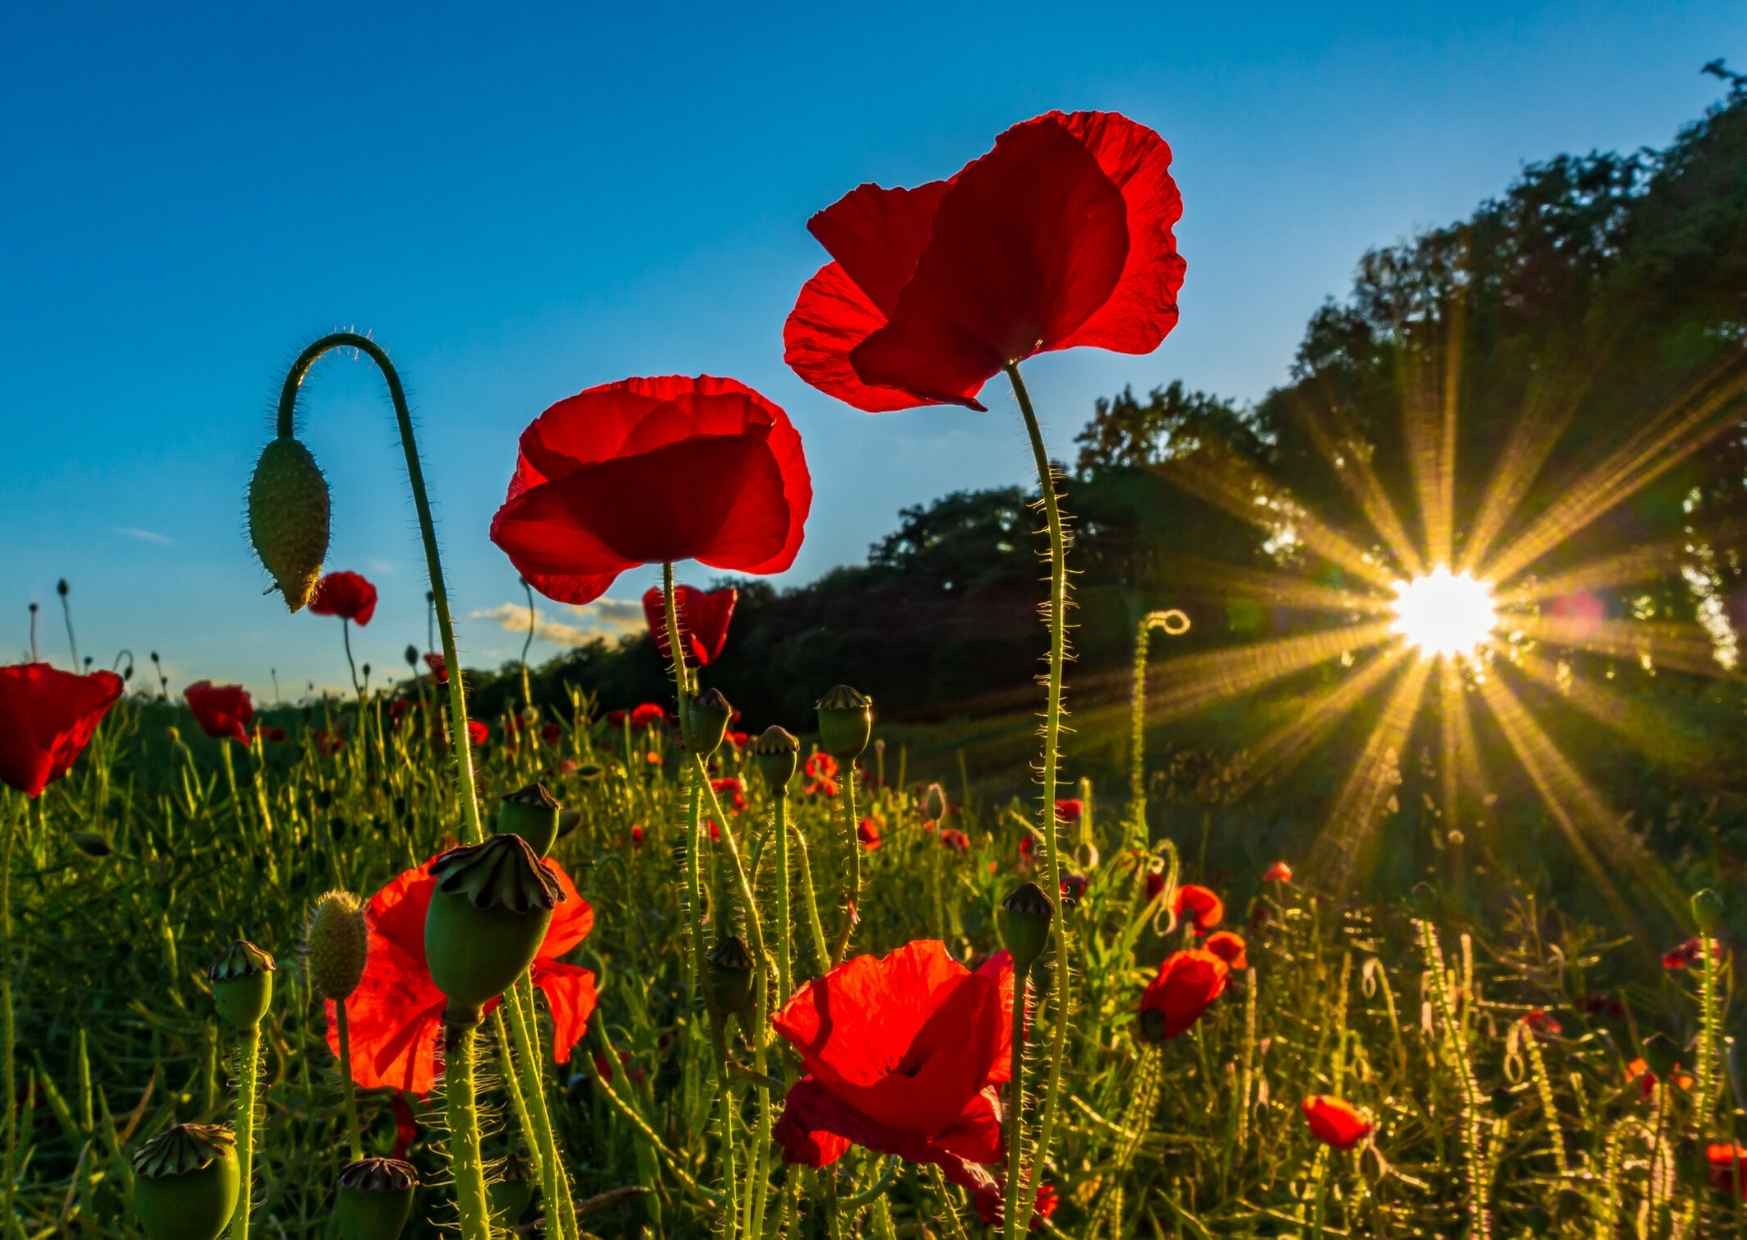 Edinburgh poppies at sunset